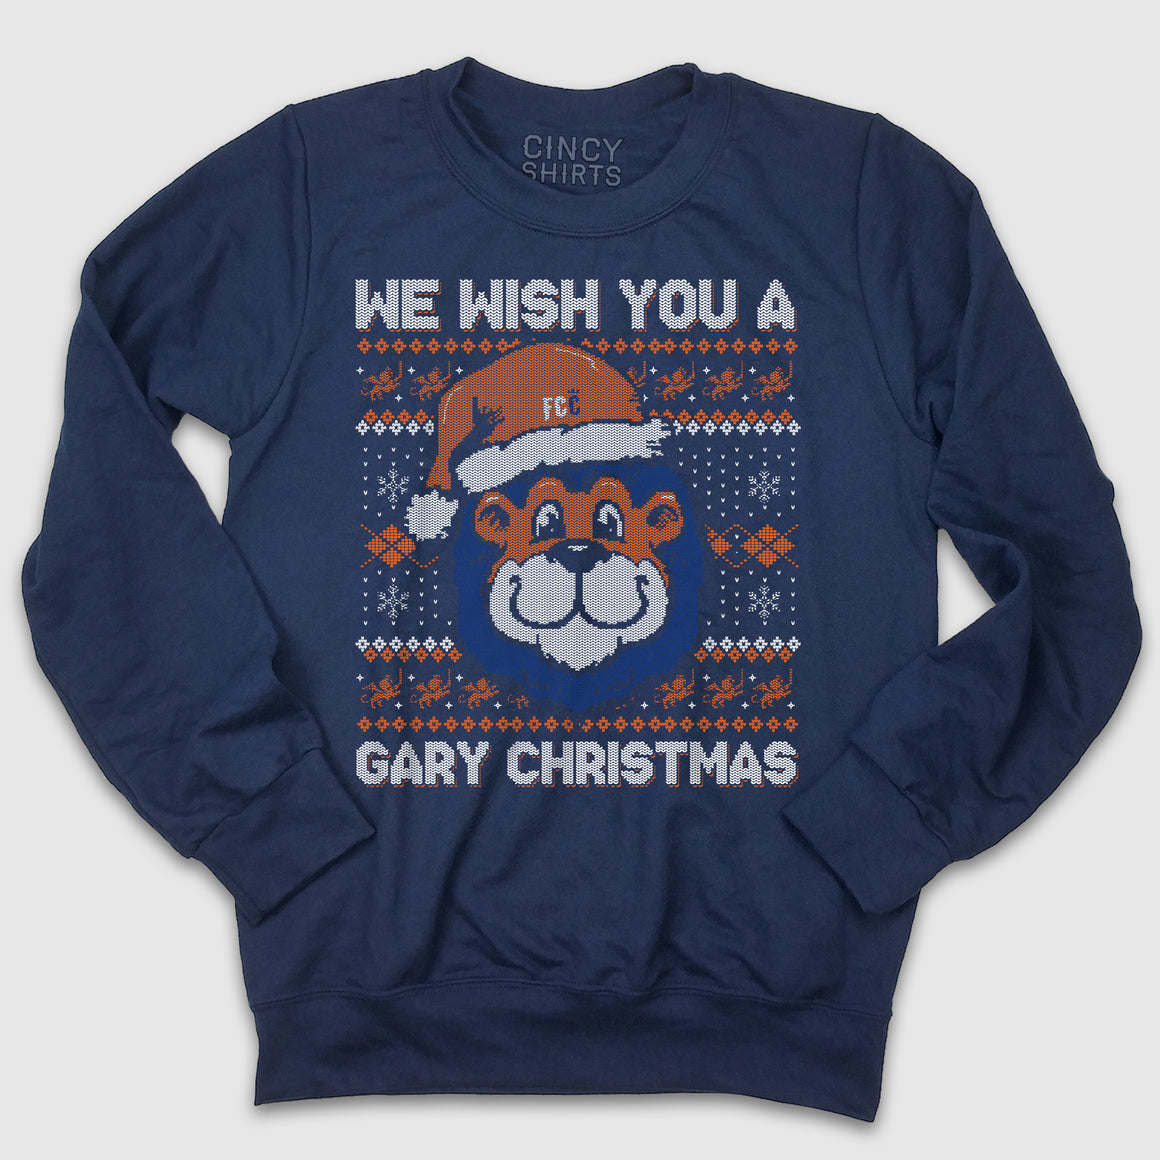 Gary Christmas - FC Cincinnati Christmas Sweatshirt - Cincy Shirts